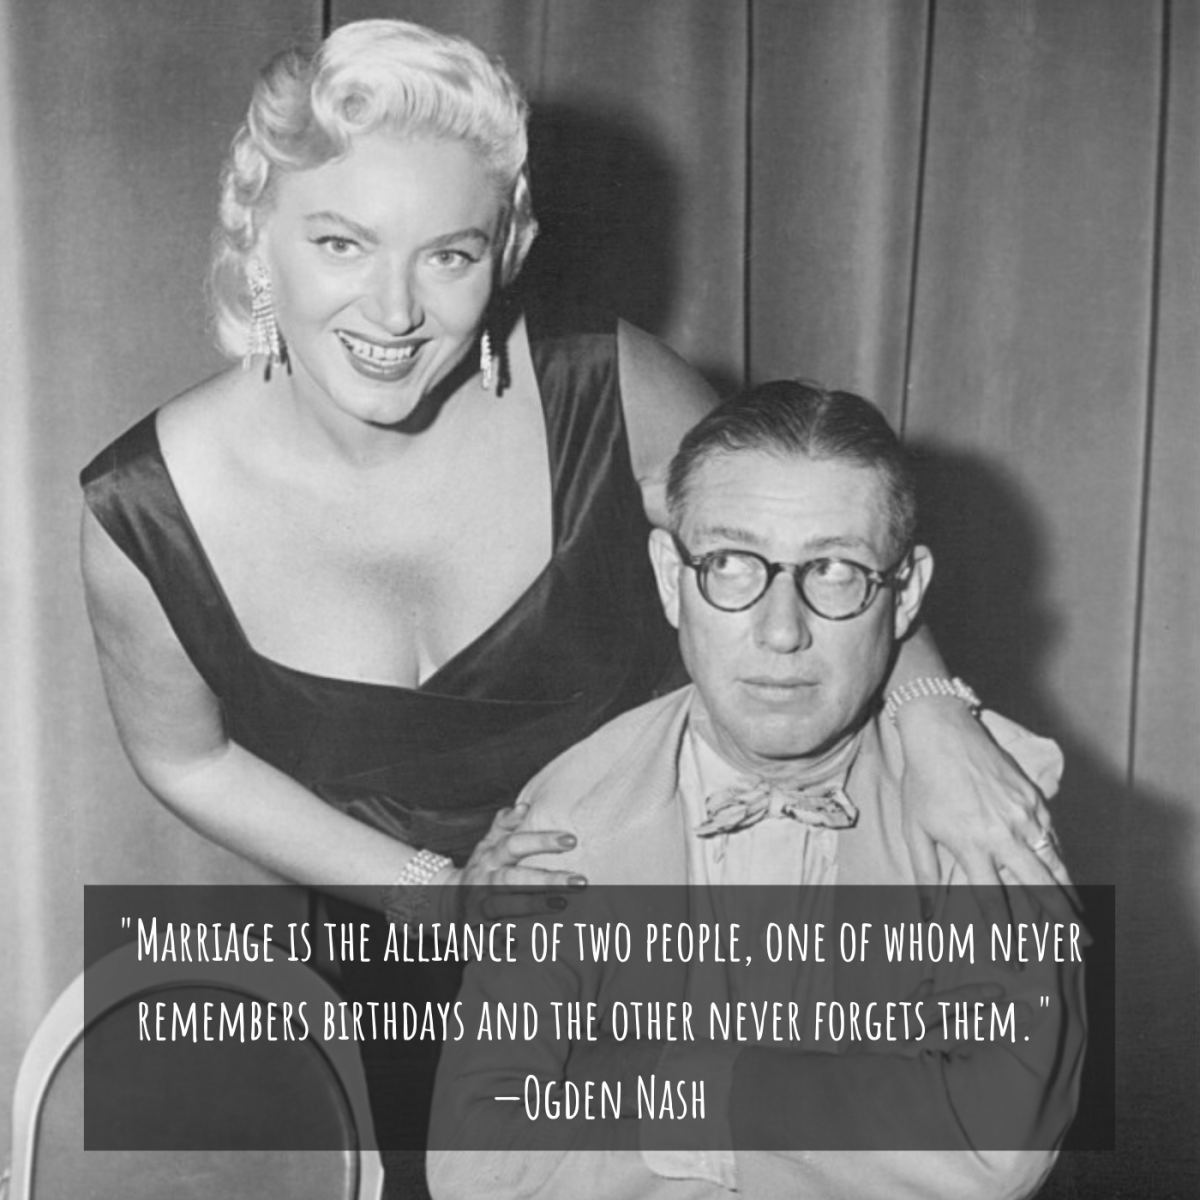 """""""Marriage is the alliance of two people, one of whom never remembers birthdays and the other never forgets them."""" —Ogden Nash"""